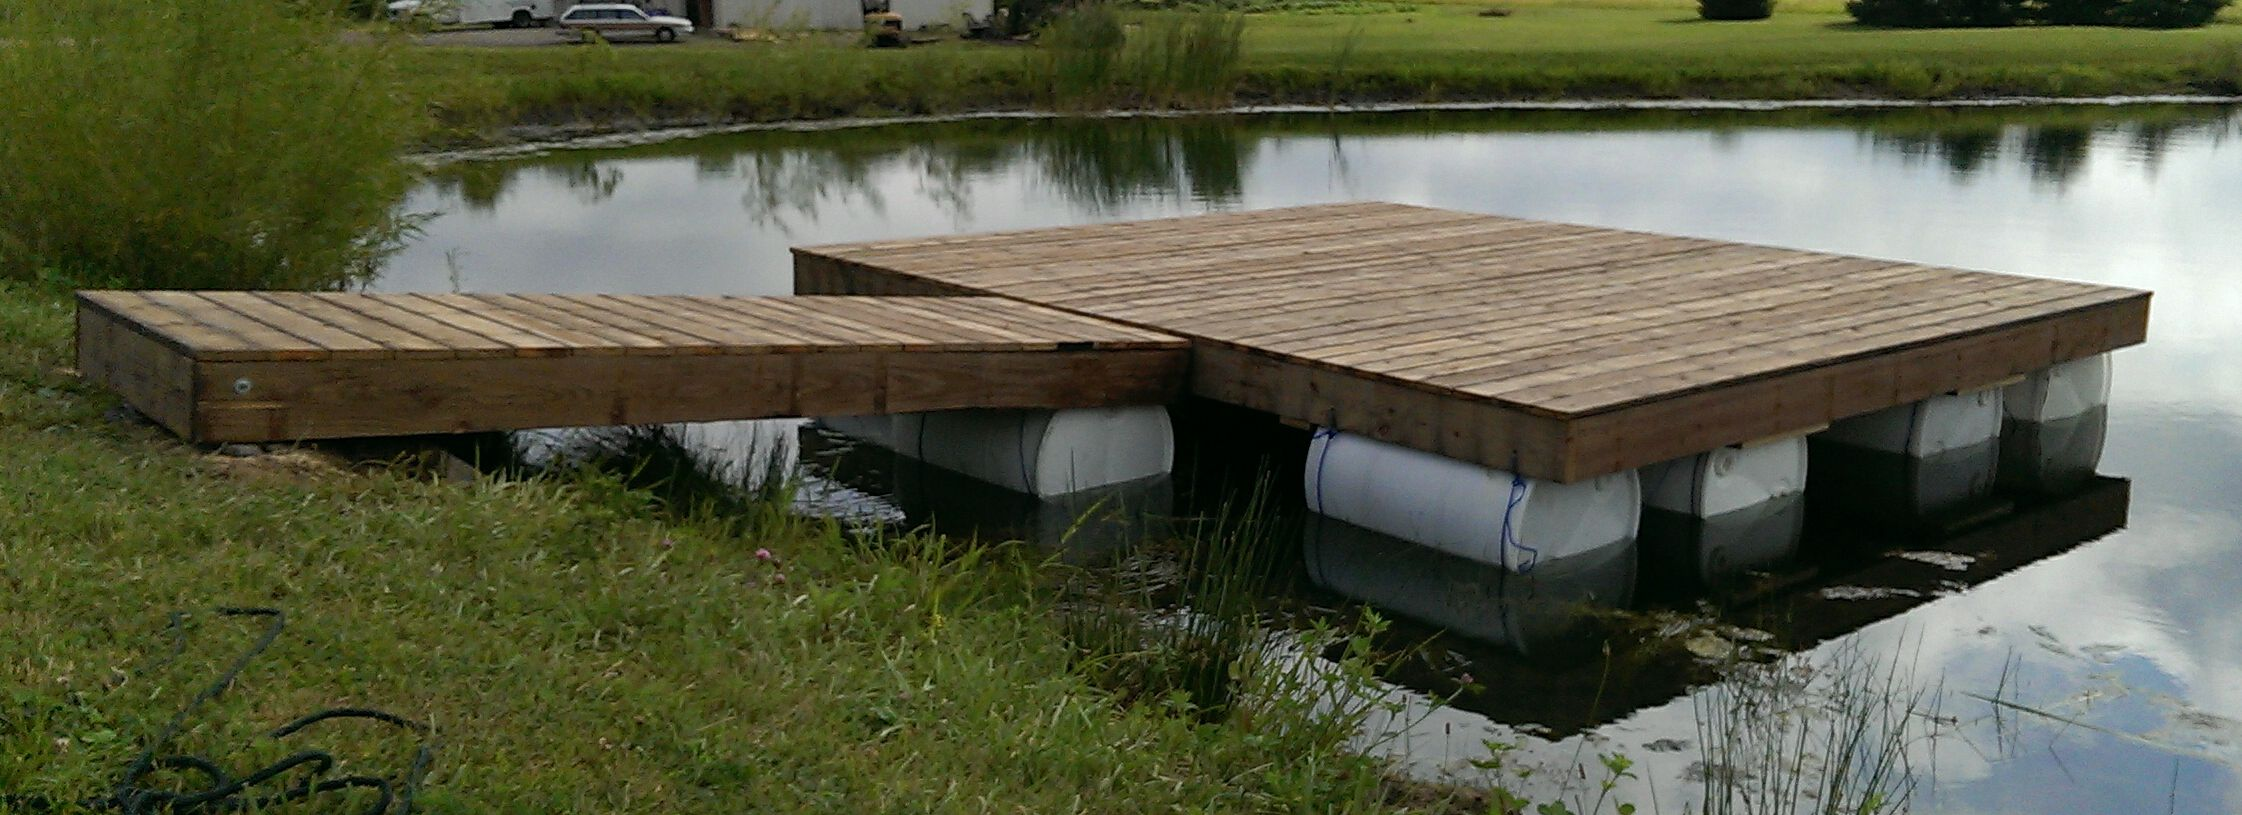 how to build a floating dock on a river